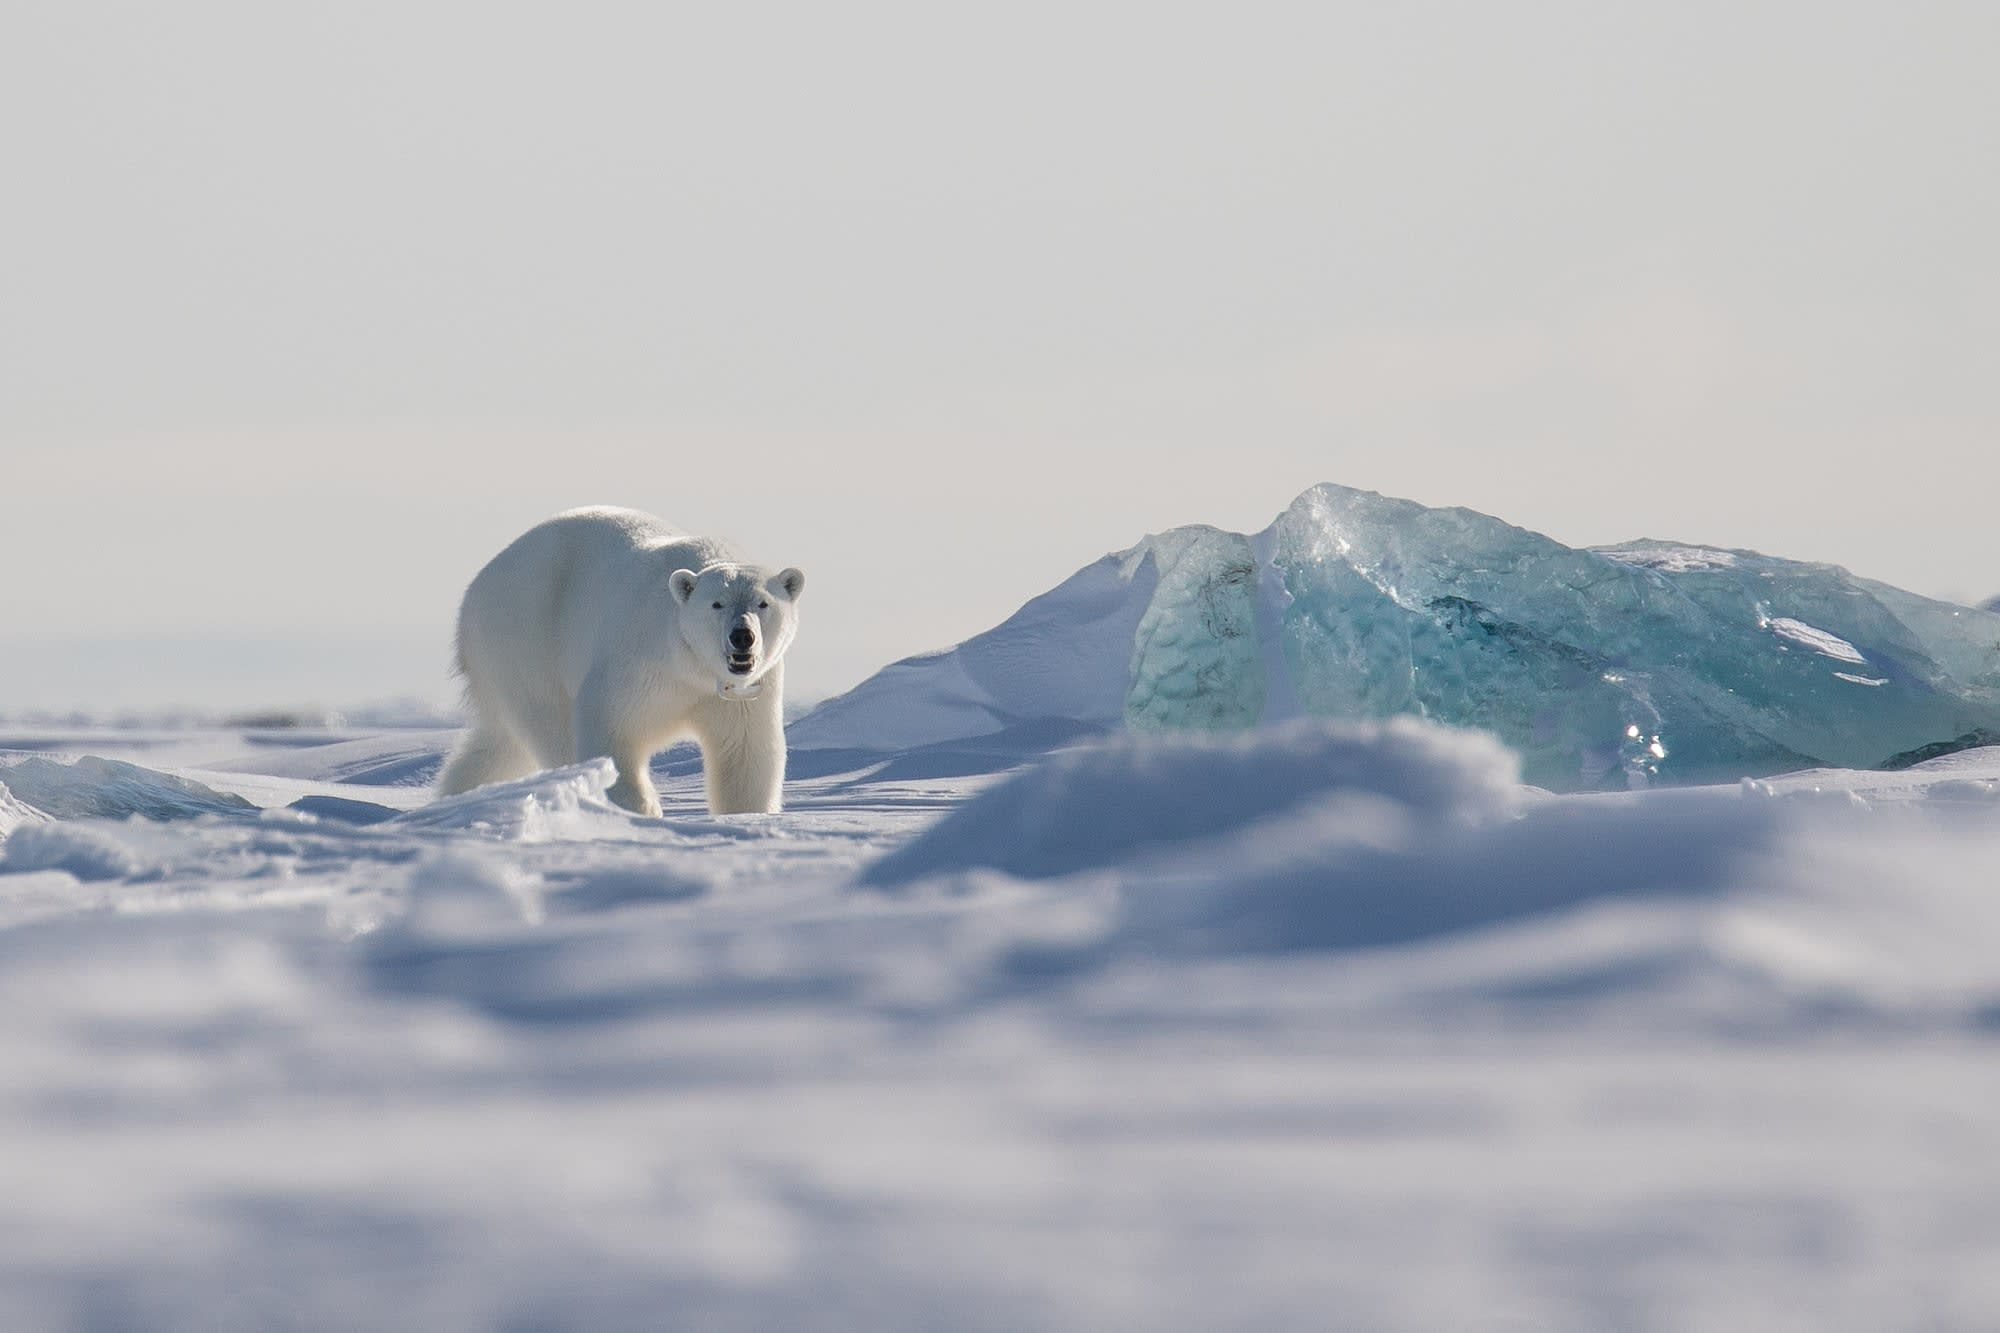 Scientists have even found microplastics in the Arctic